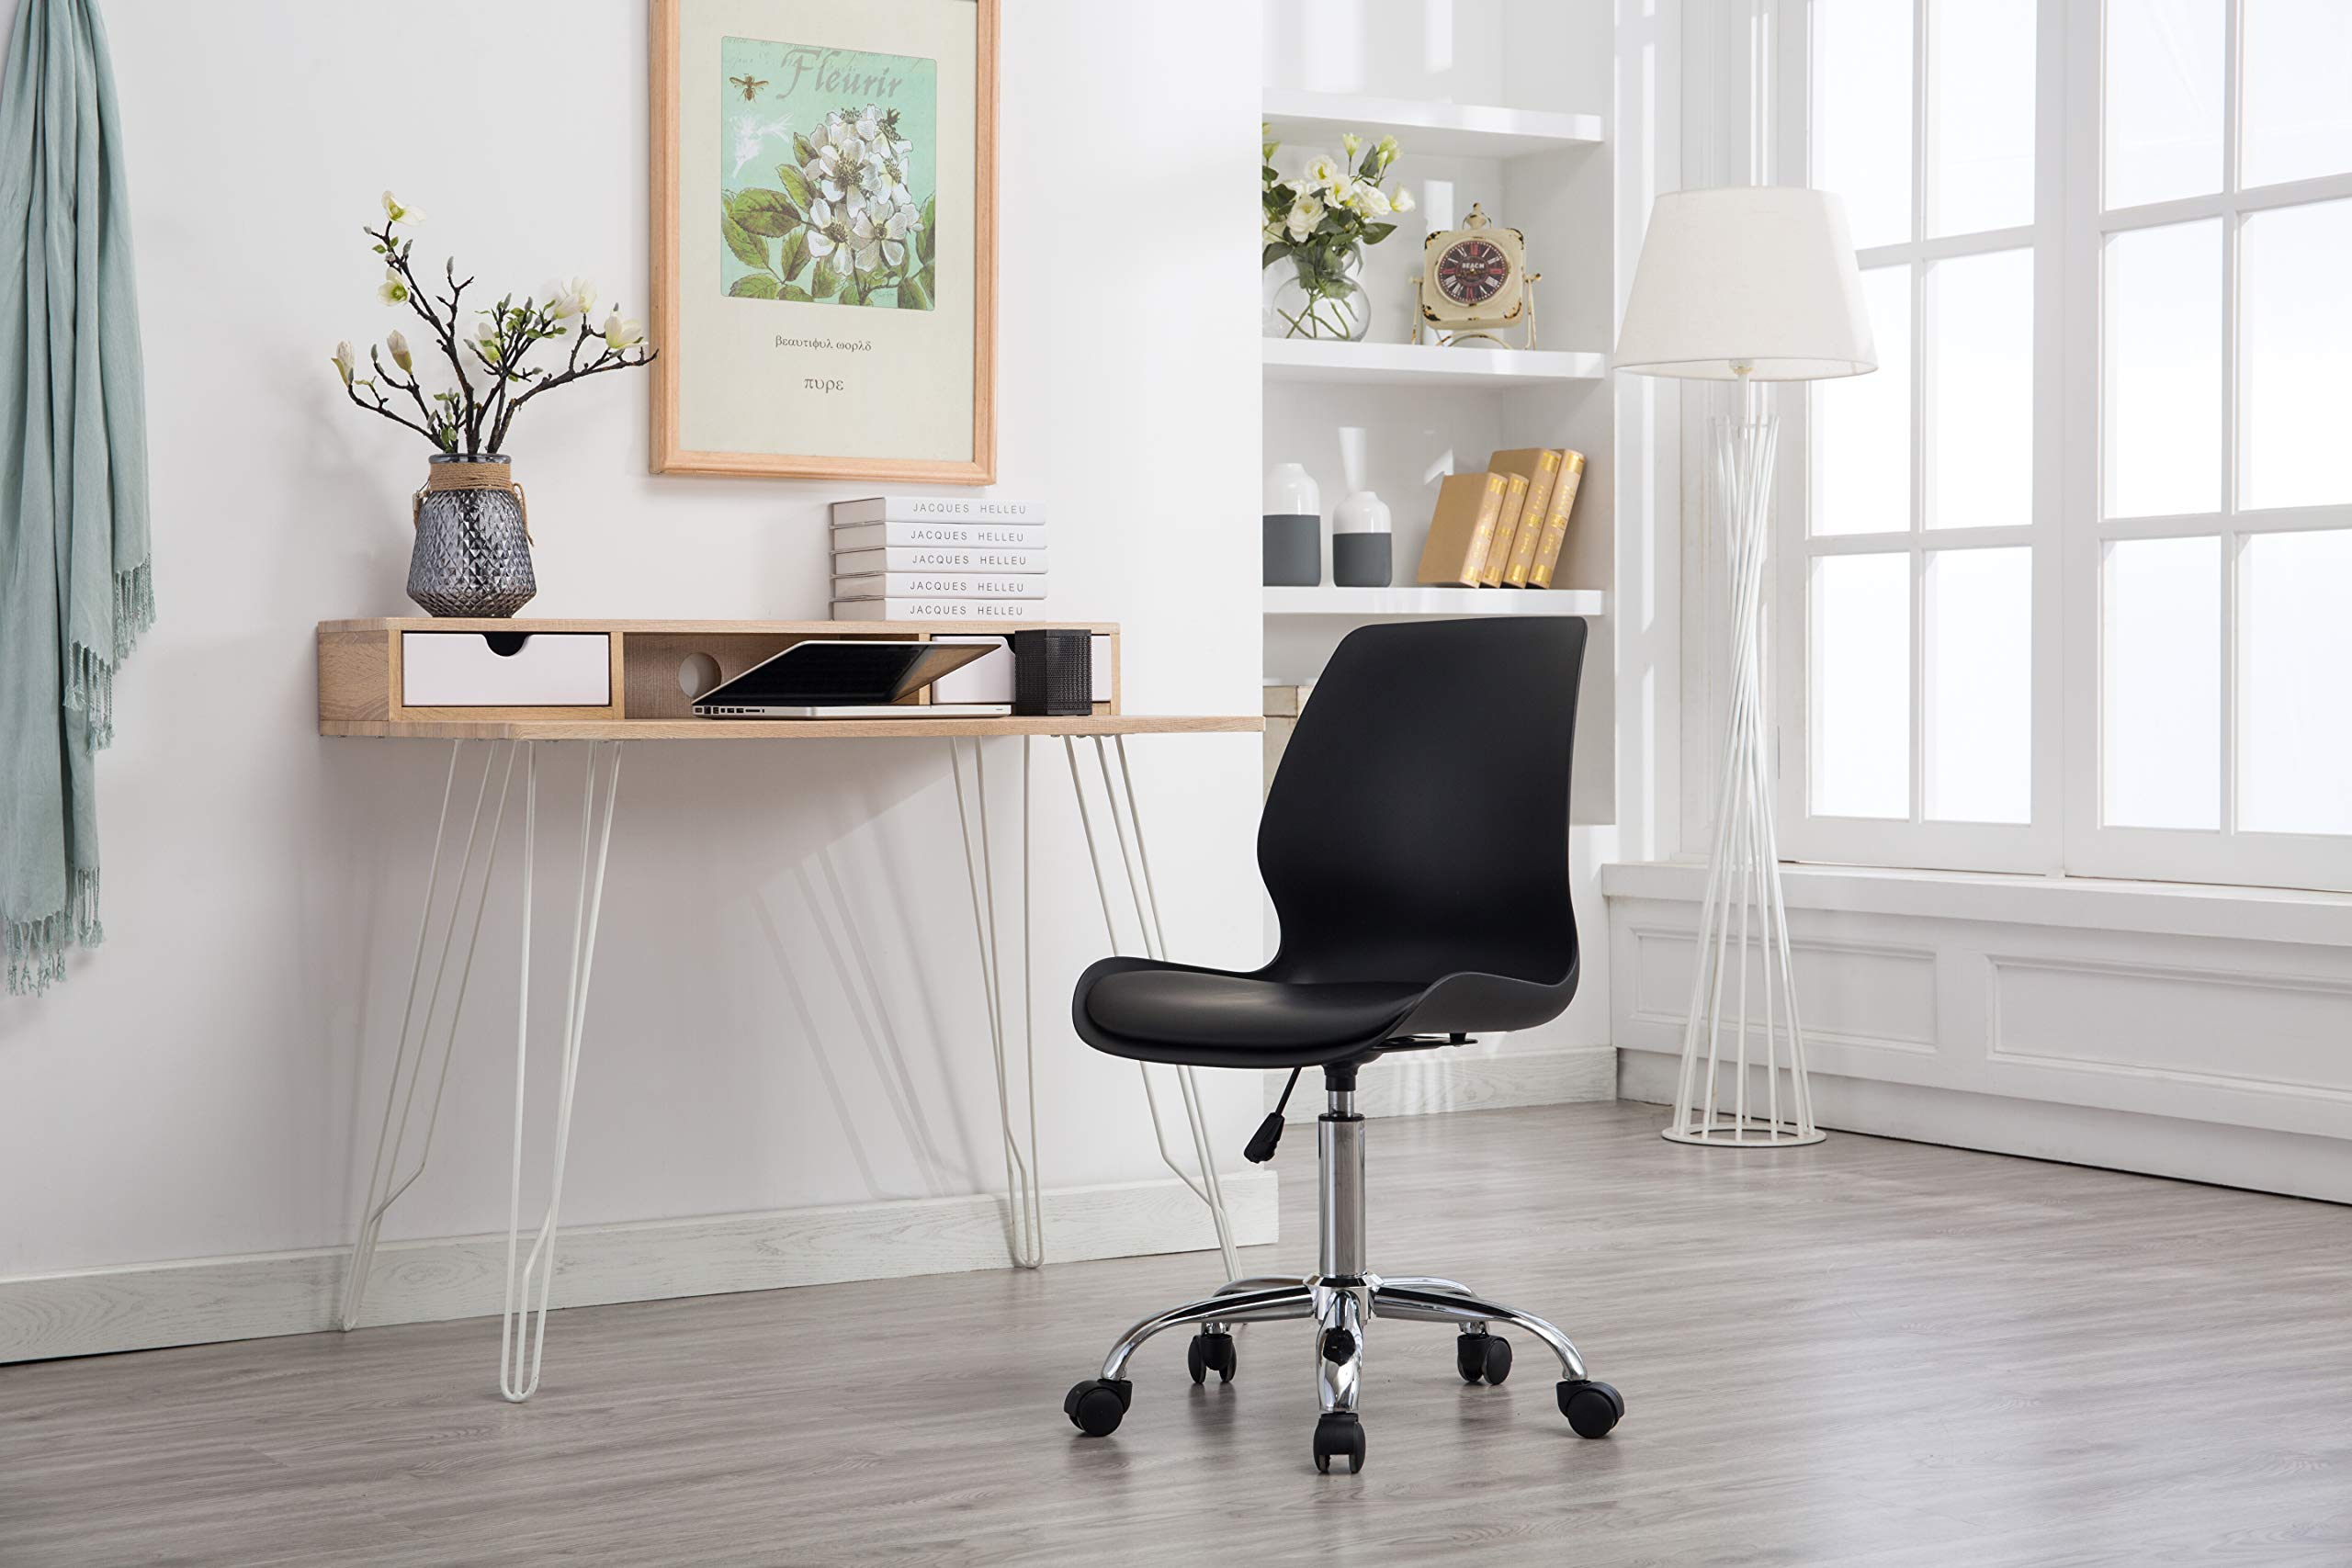 Porthos Home LVC006A BLK Adjustable Height Office Desk Chair with Wheels, Easy Assembly, White or Black, One Size